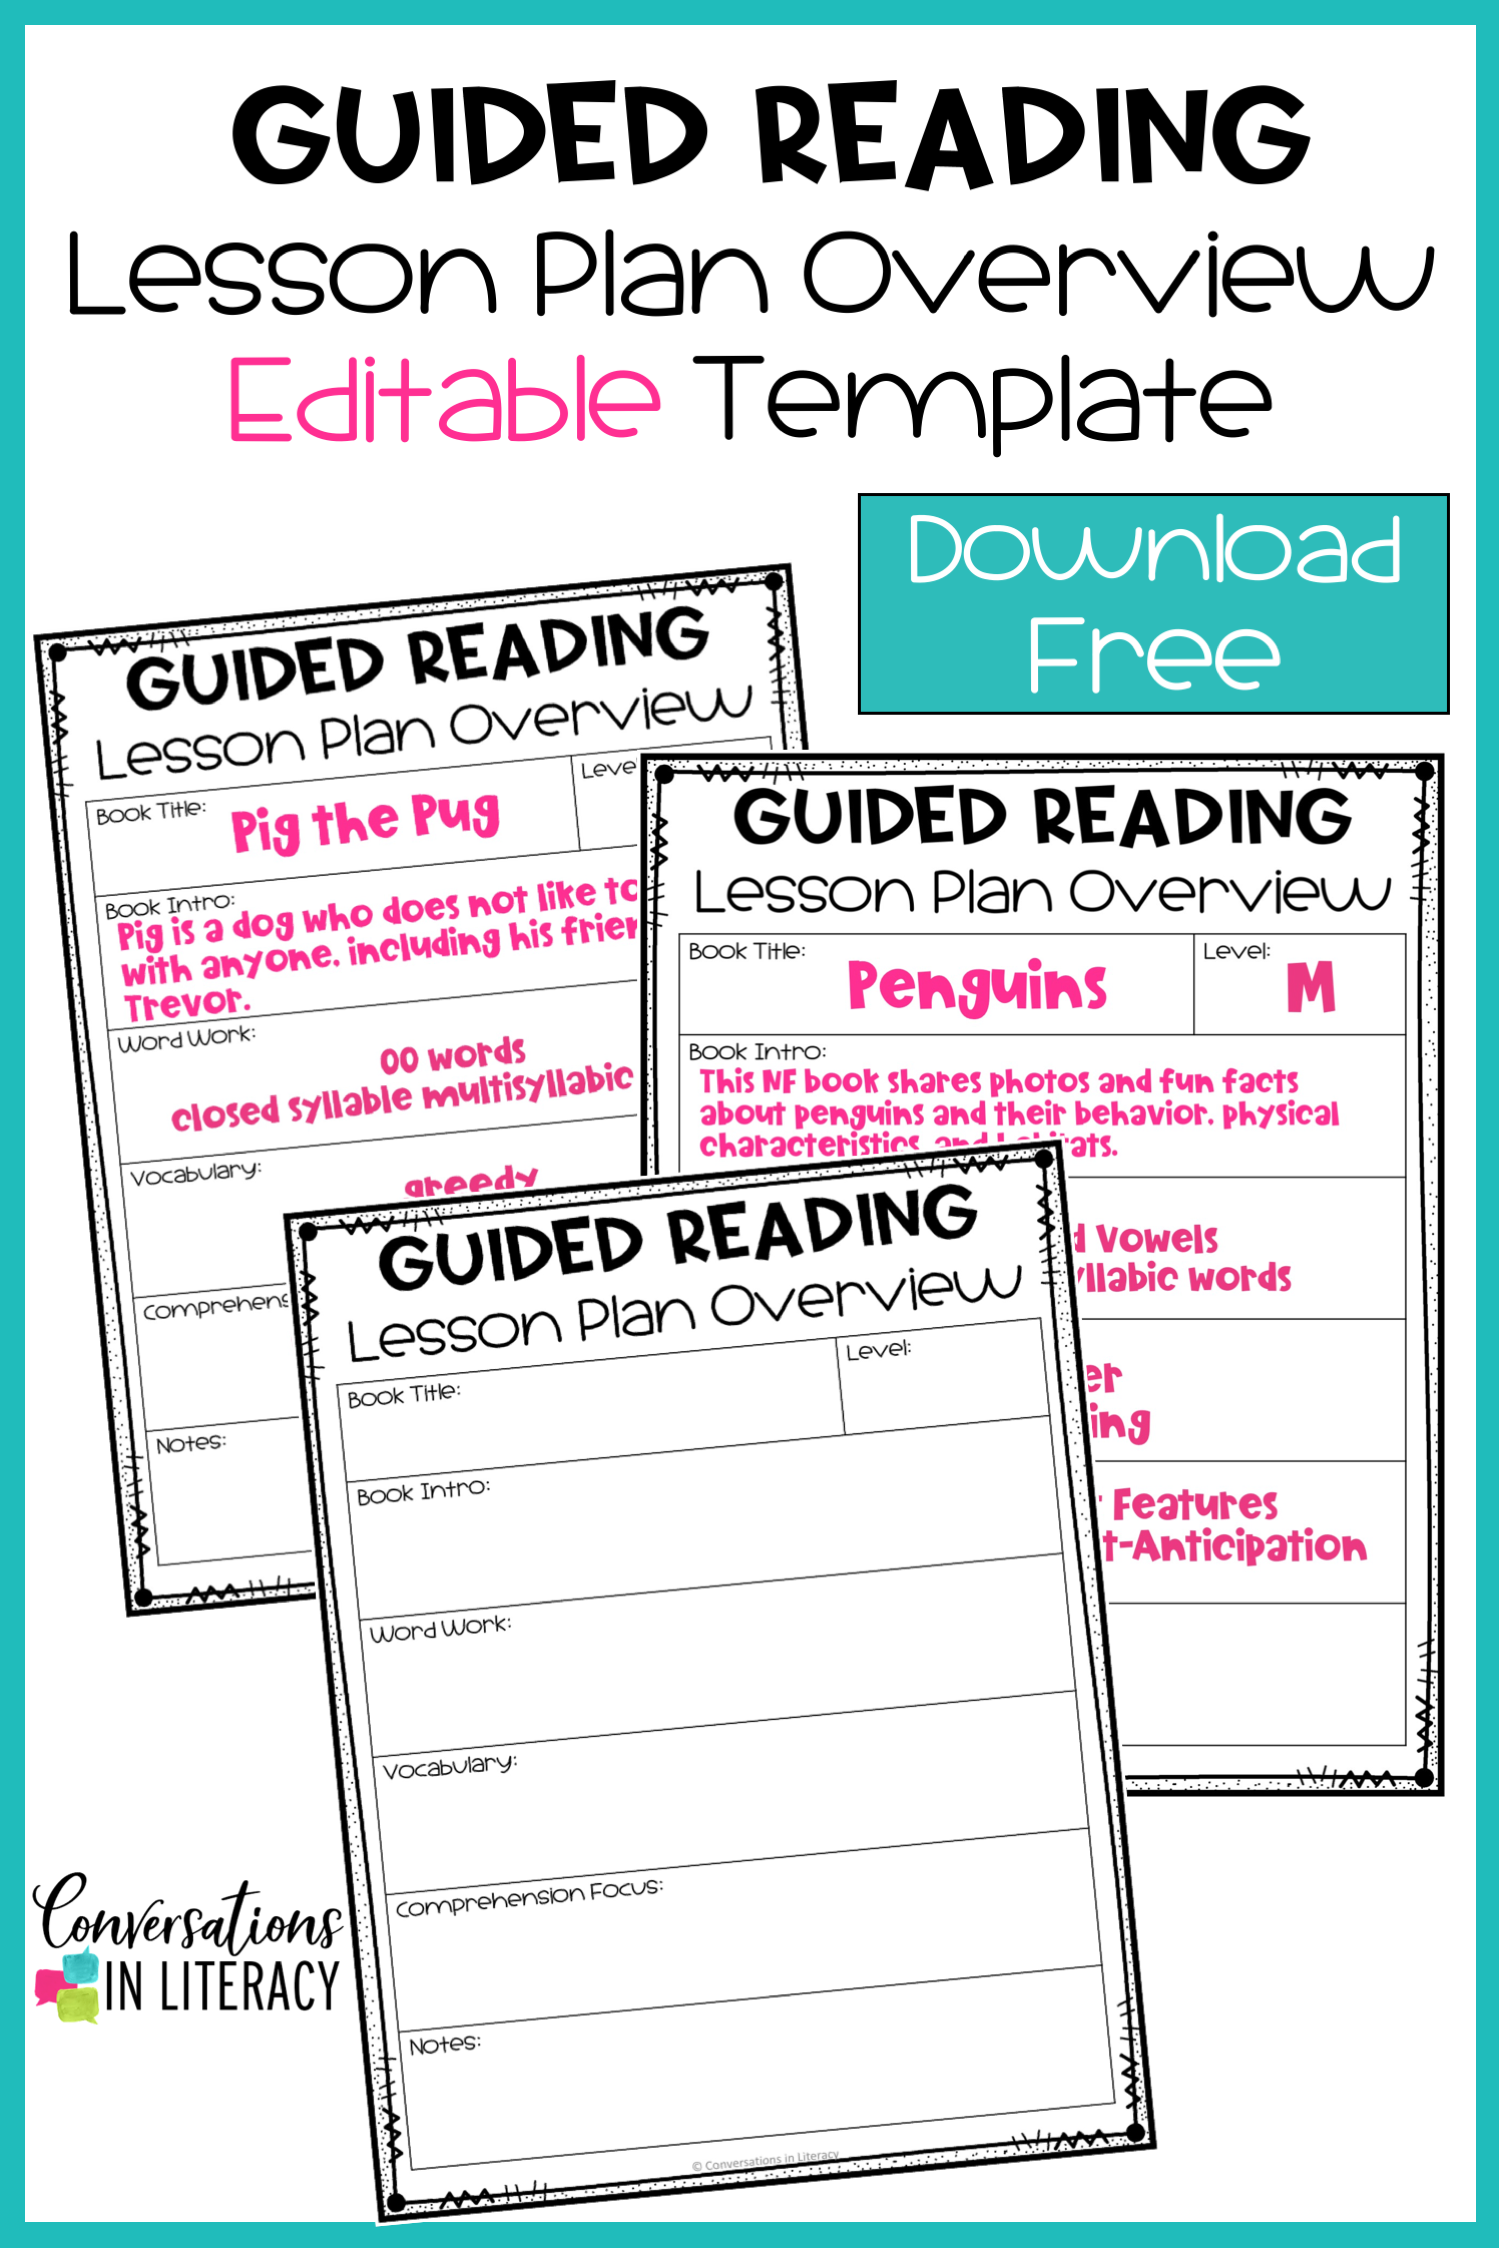 Free Editable Guided Reading Lesson Plan Overview